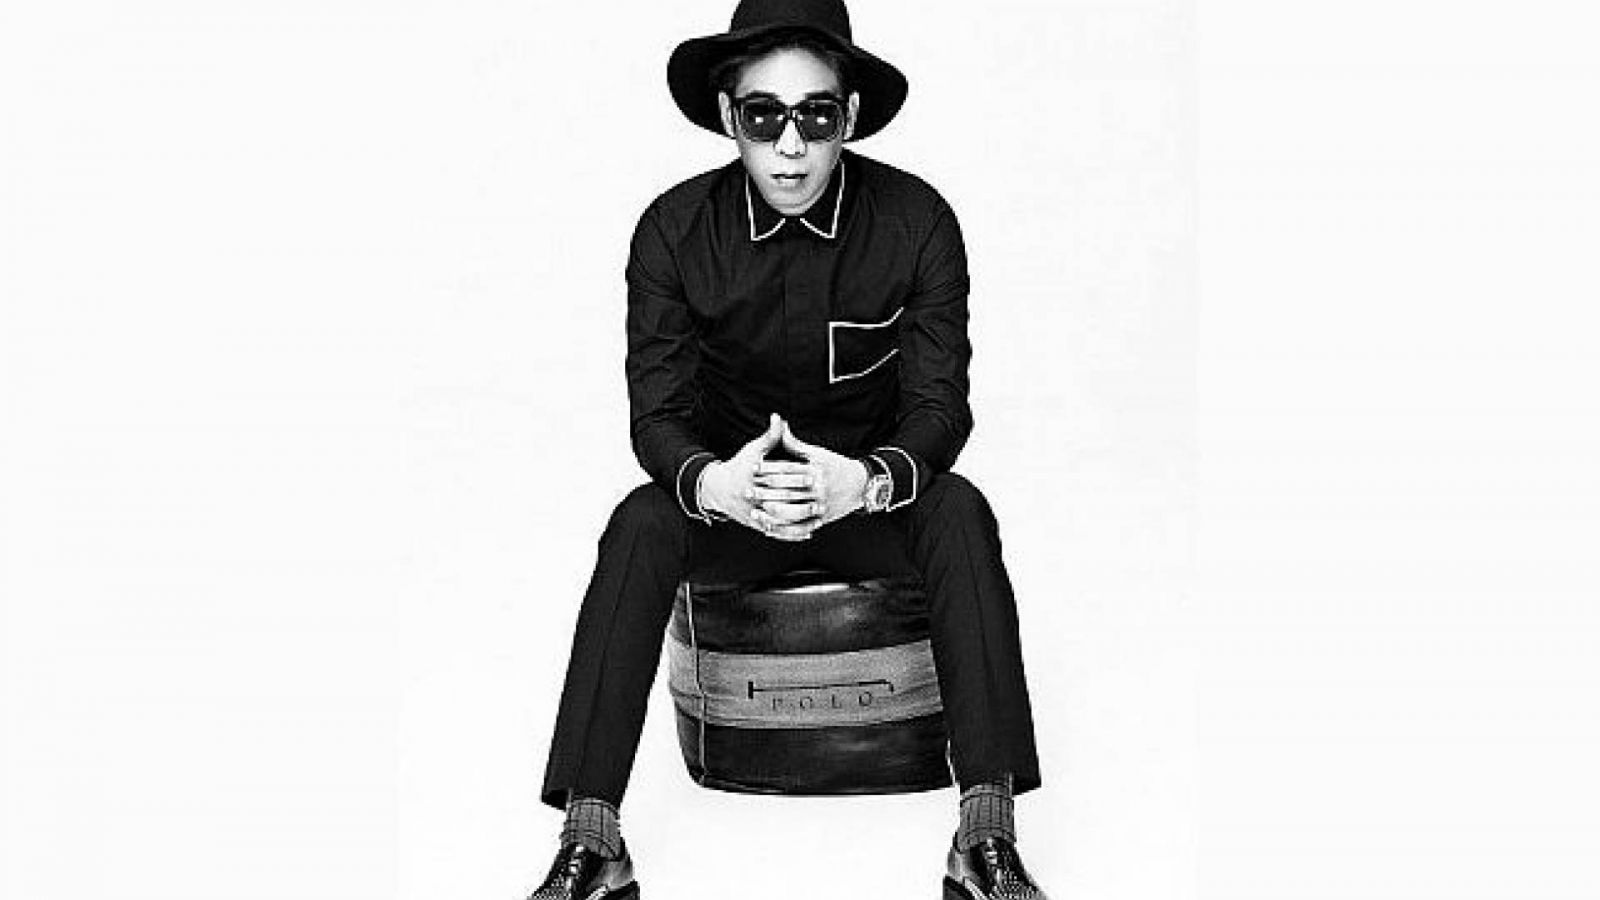 MC MONG volta com Love mash © Wellmade Yedang, DreamT Entertainment